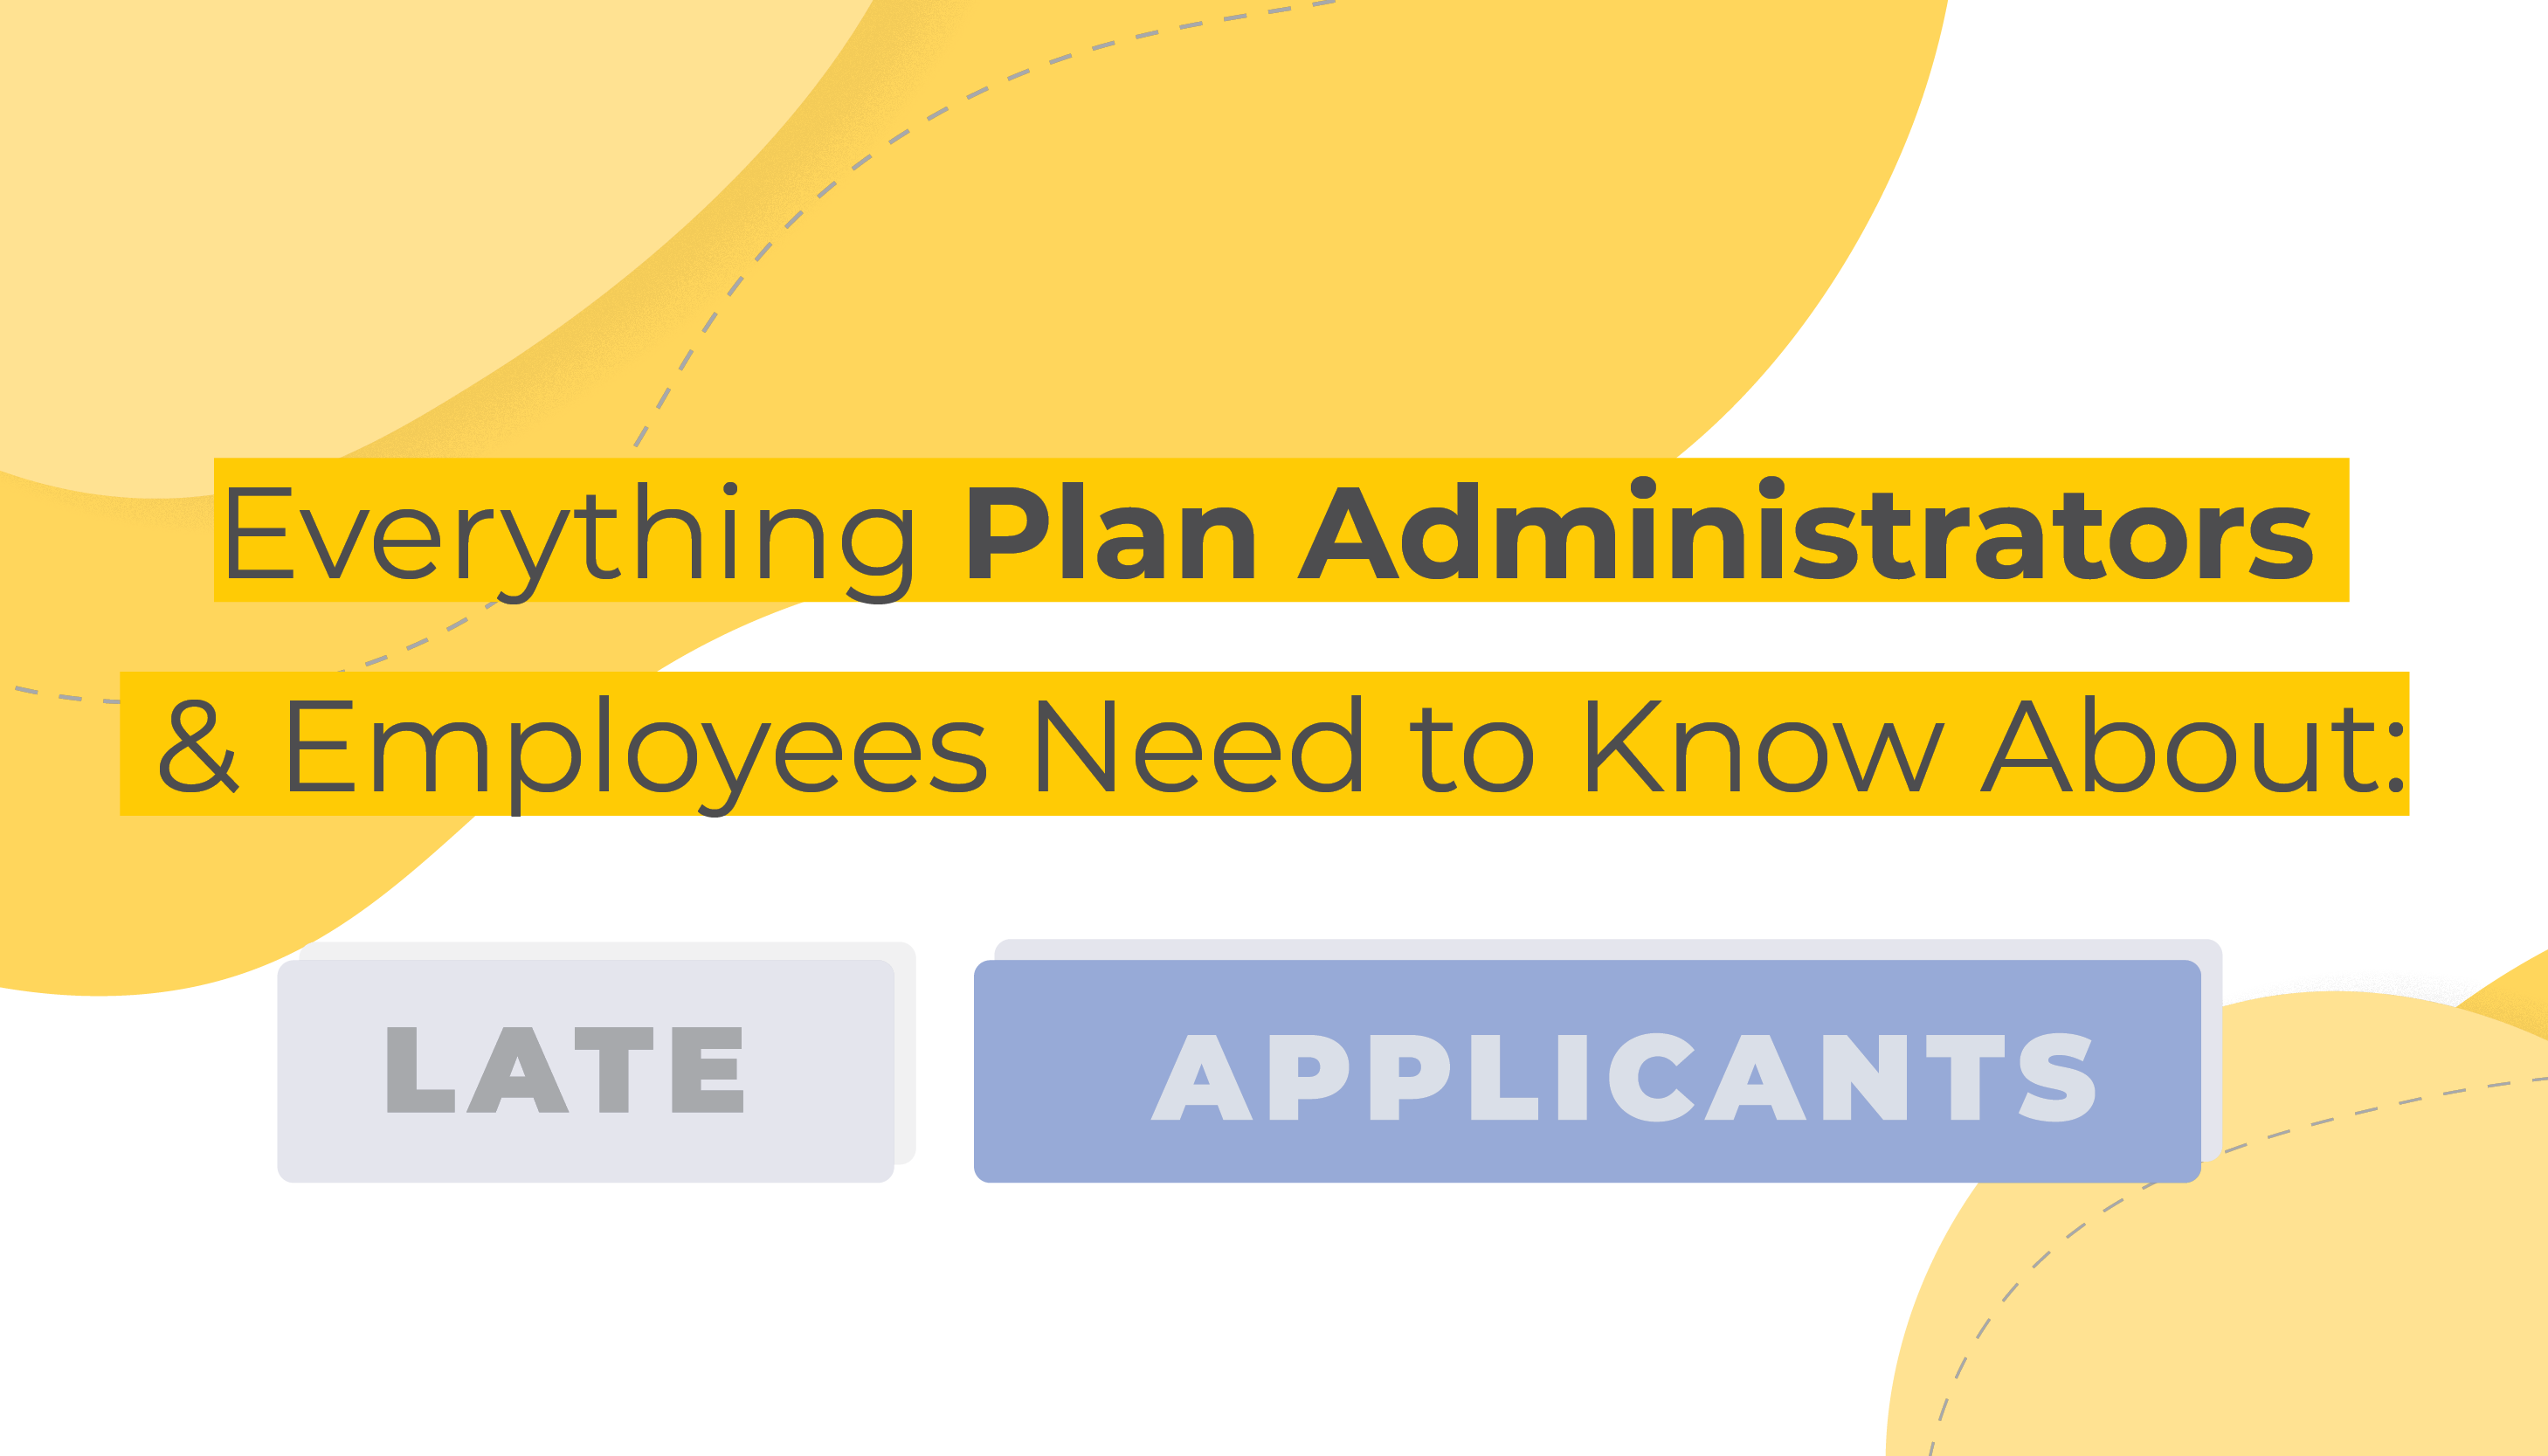 Everything Plan Administrators & Employees Need to Know About Late Applicants | Benefits by Design